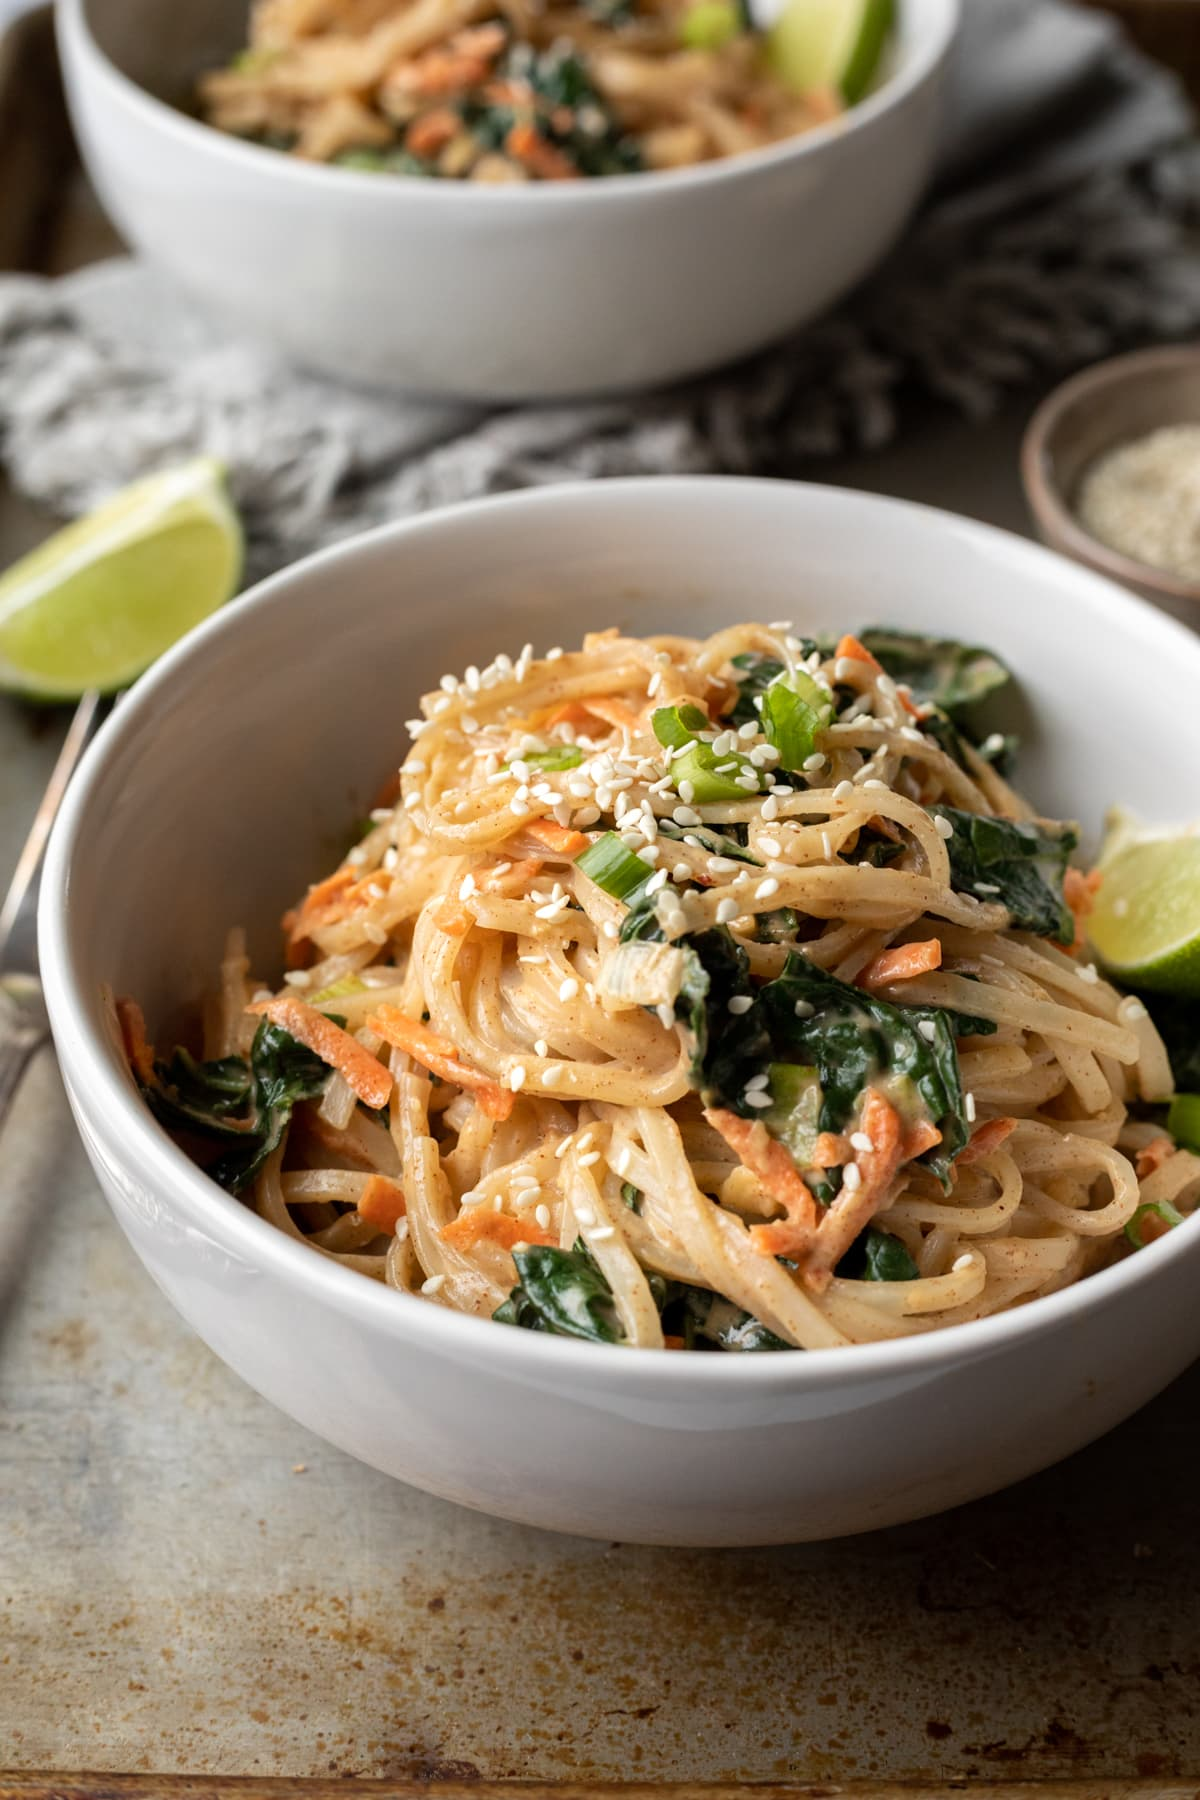 two bowls full of noodles with kale, carrot, and lime